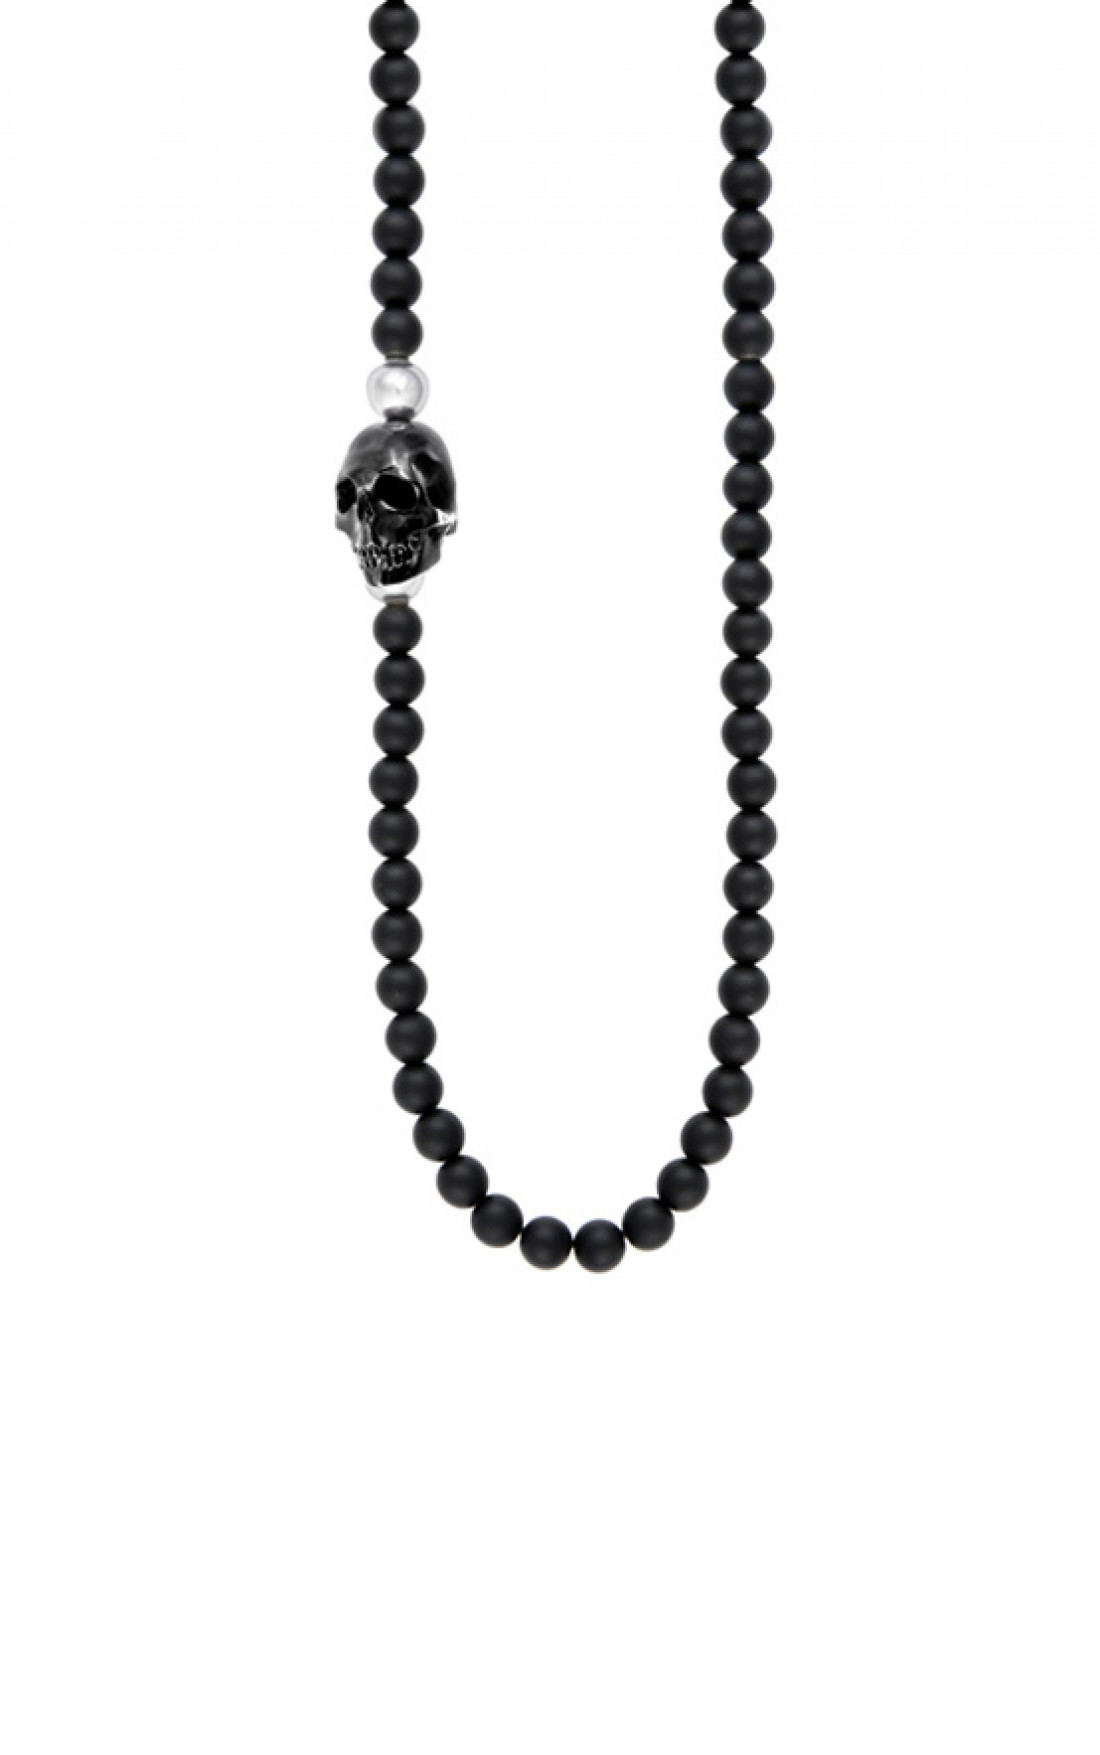 King Baby - Onyx Bead Necklace with Jet Skull (K56-5061)